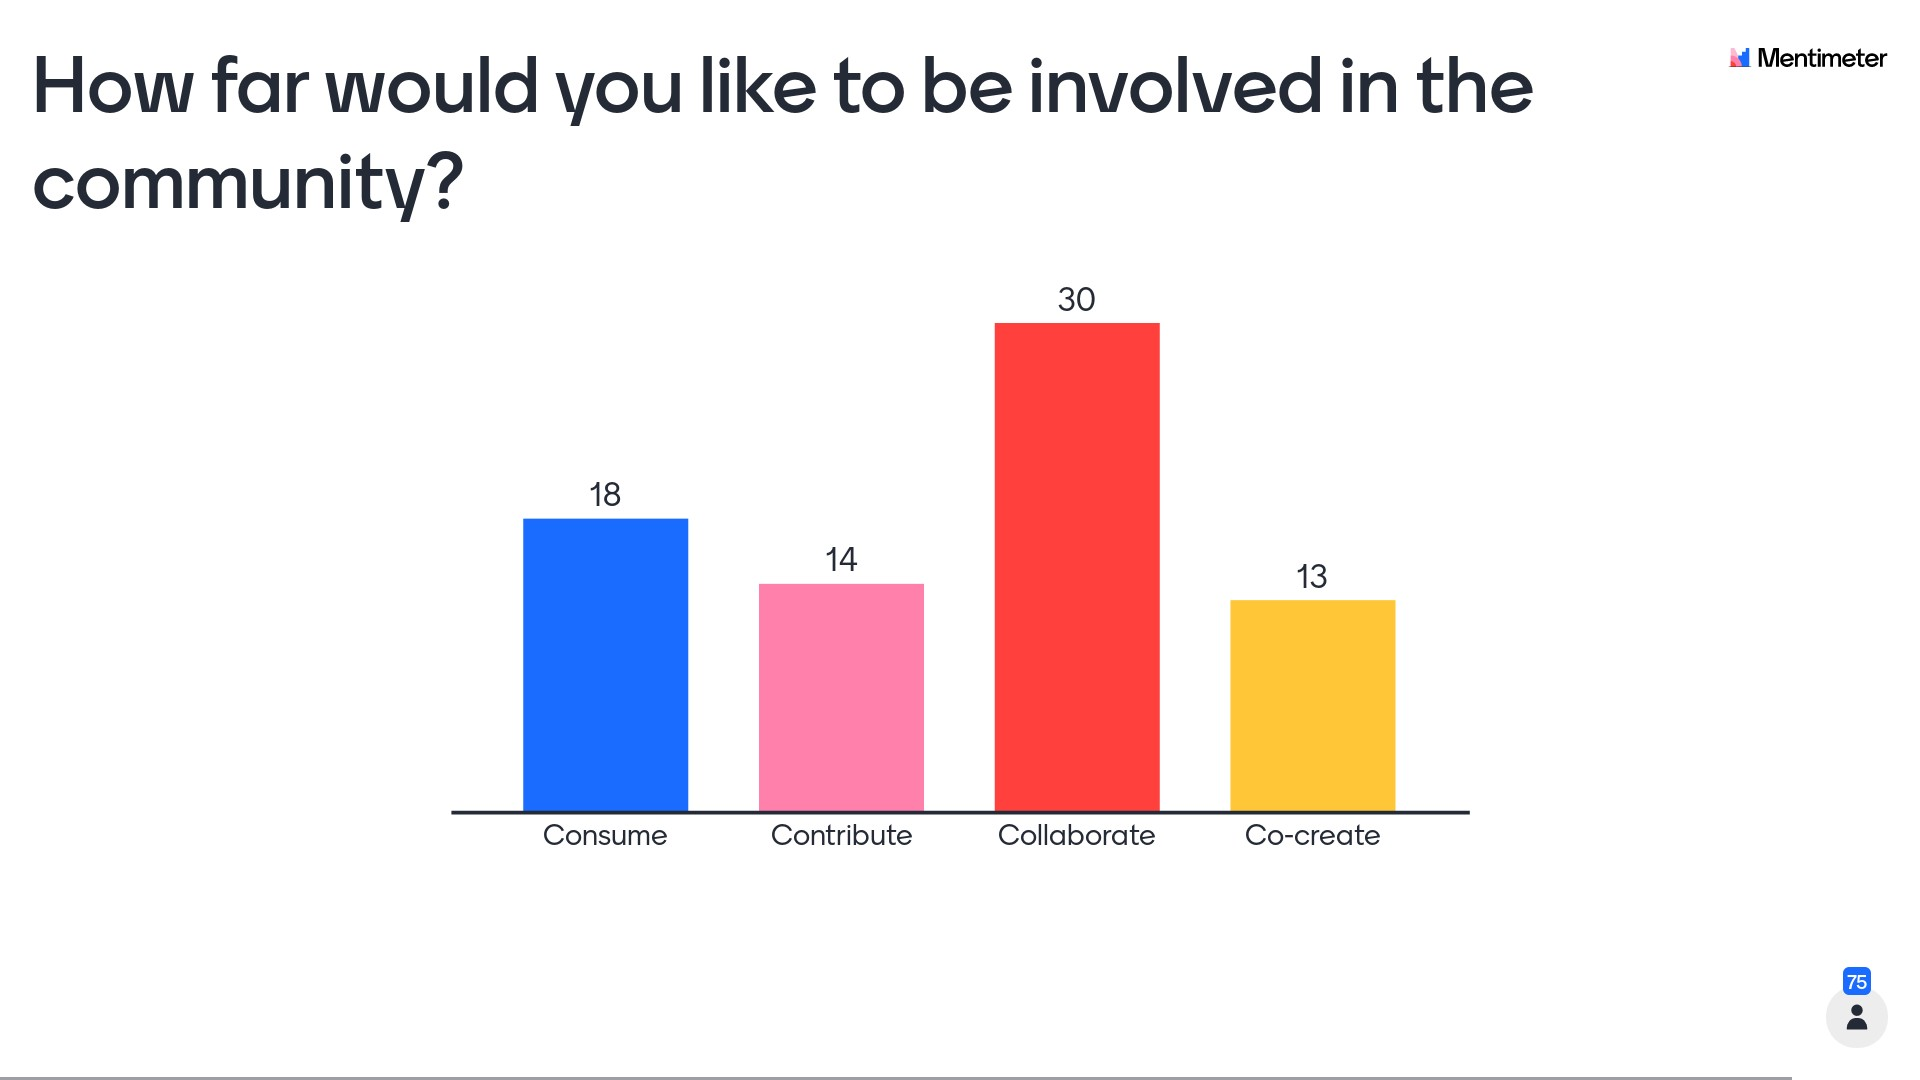 Attendees were asked how far they would like to be involved in the community. This image summarises responses (number of people): Consume 18, Contribute 14, Collaborate 30, Co-create 13